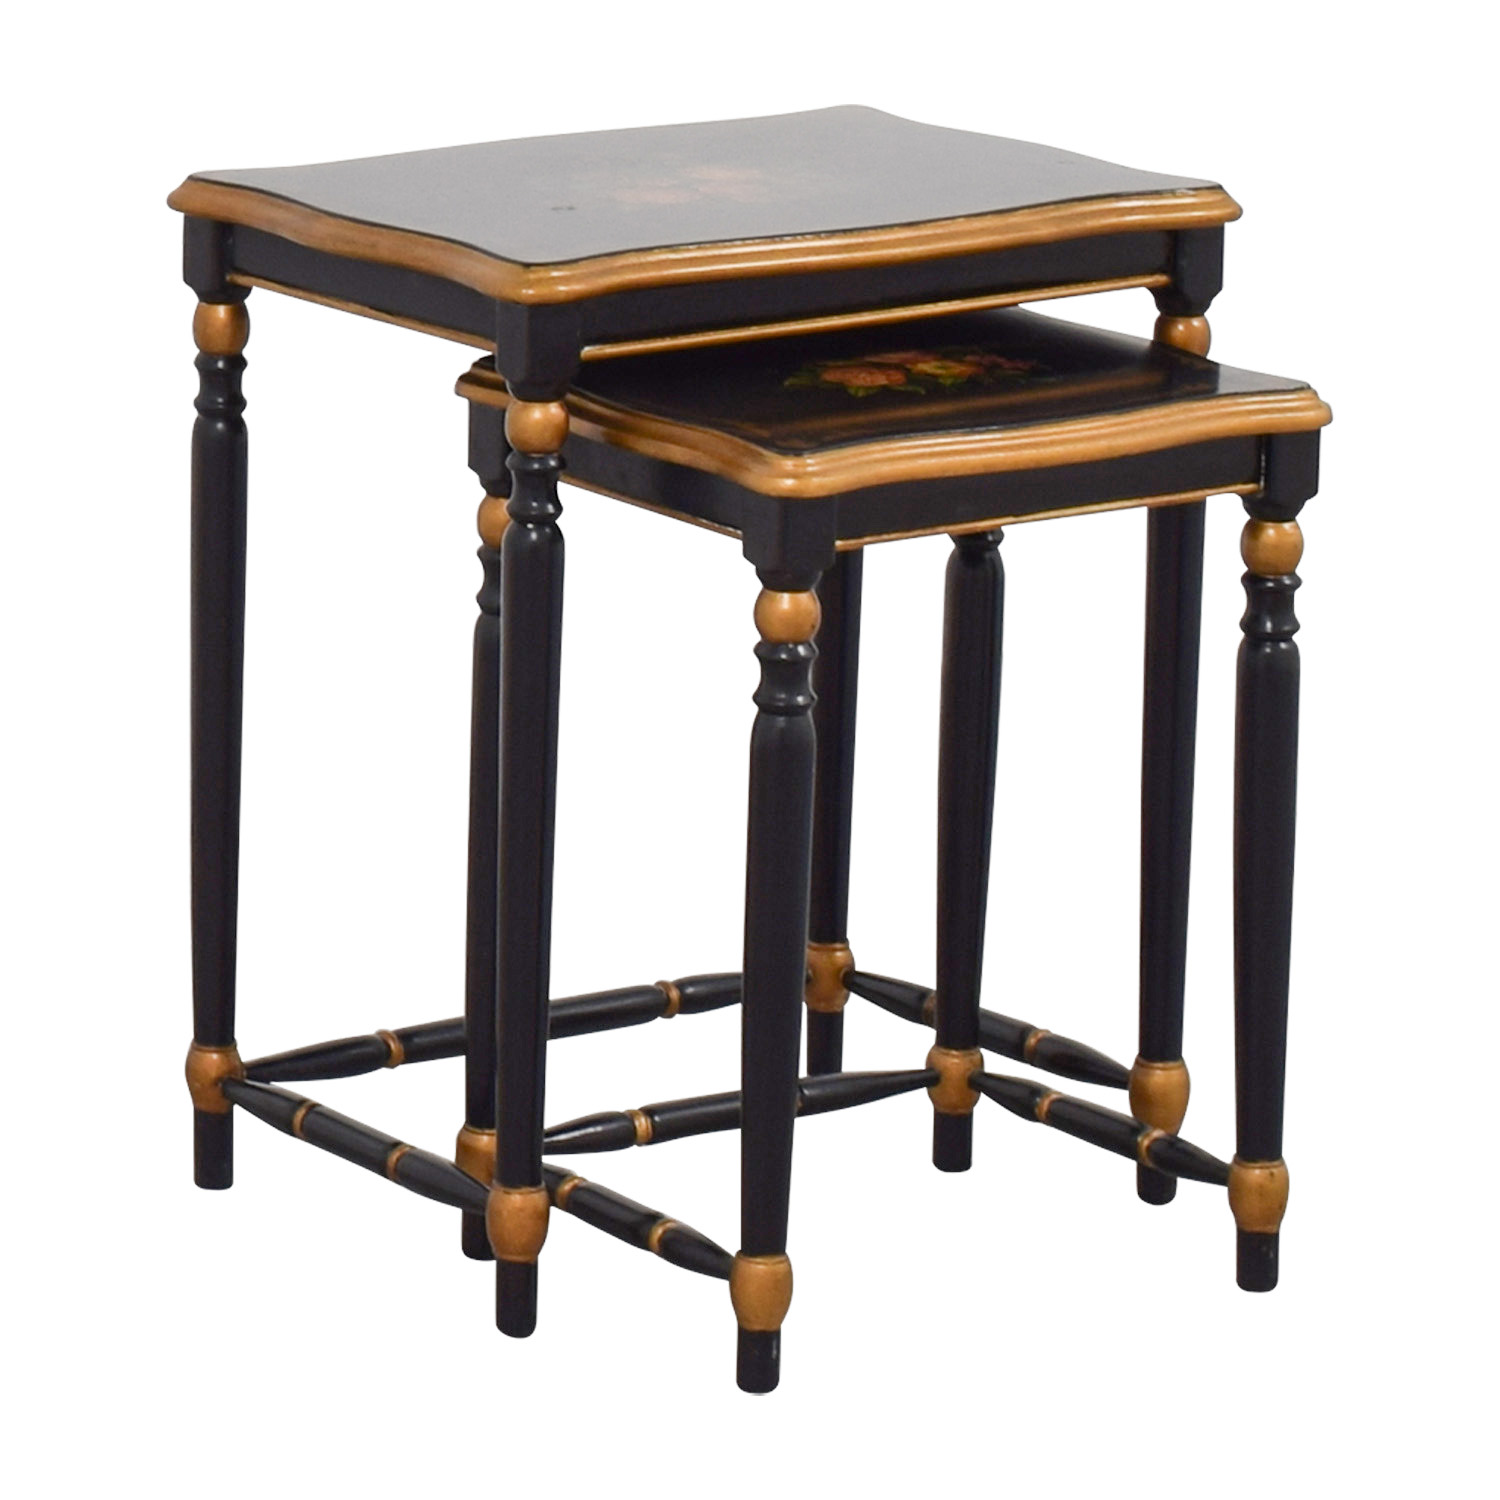 Oriental Accent Oriental Accent Nesting Tables with Painted Flower Design nj